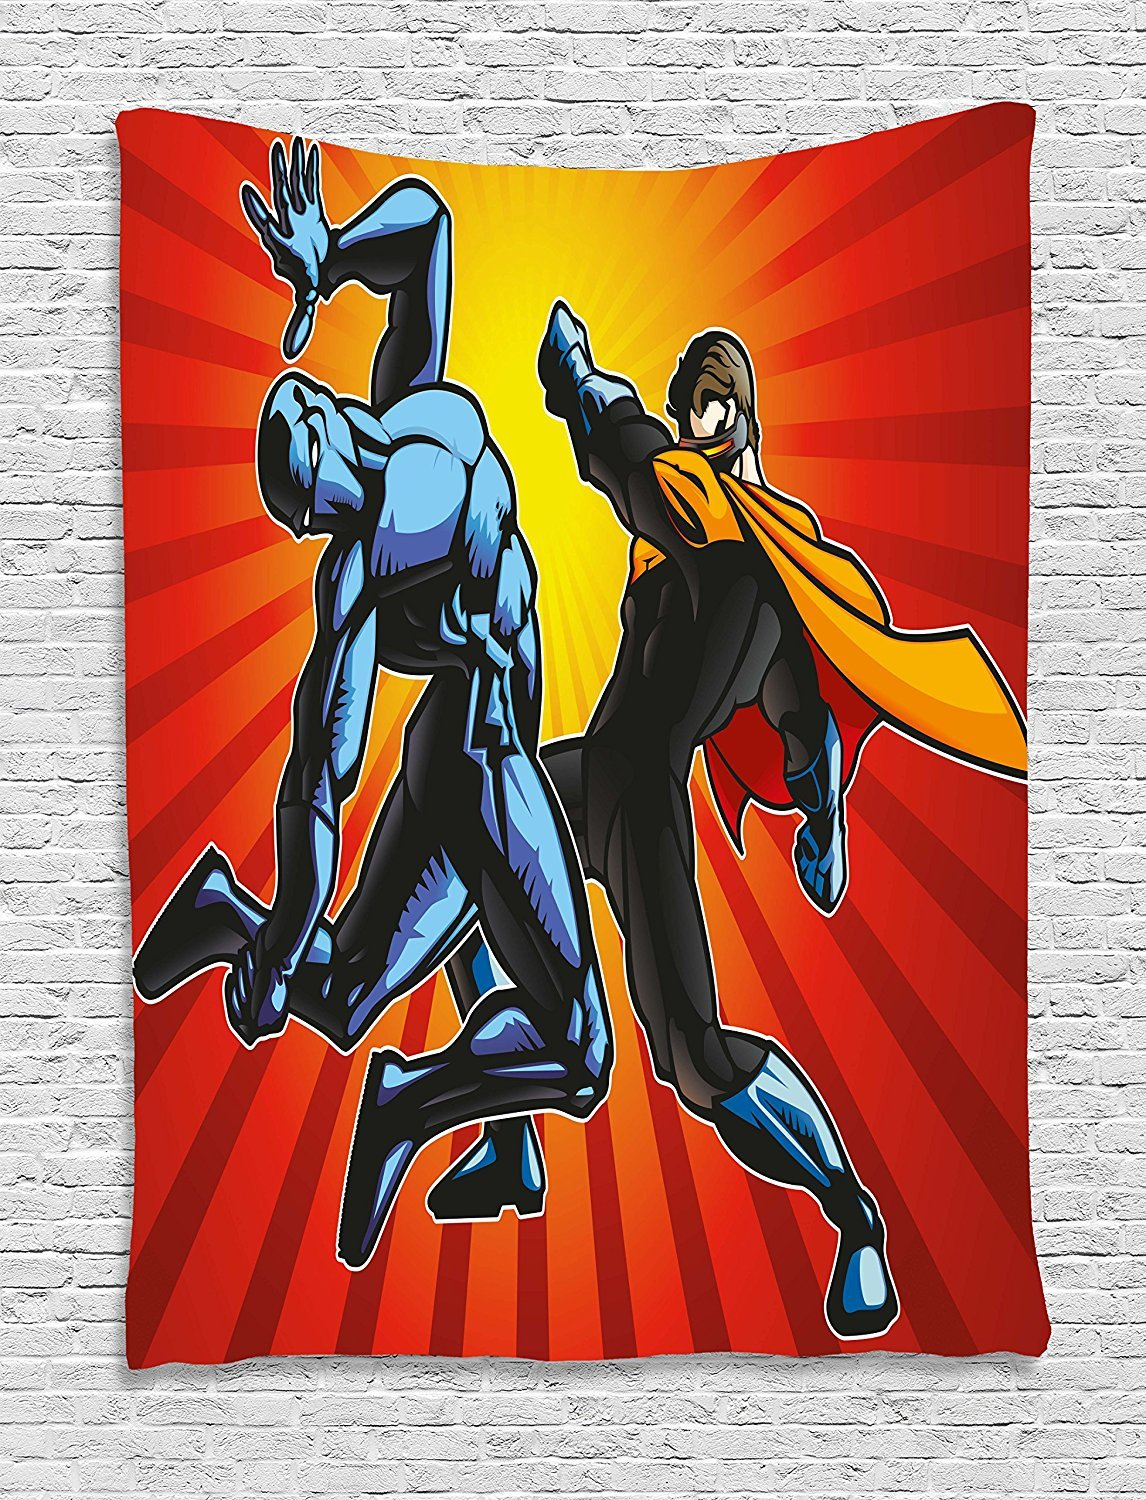 asddcdfdd Superhero Tapestry, Hero and Ninja in Battle Combat Fighters Villain Punching Fist Fantasy Print, Wall Hanging for Bedroom Living Room Dorm, 60 W X 80 L Inches, Multicolor